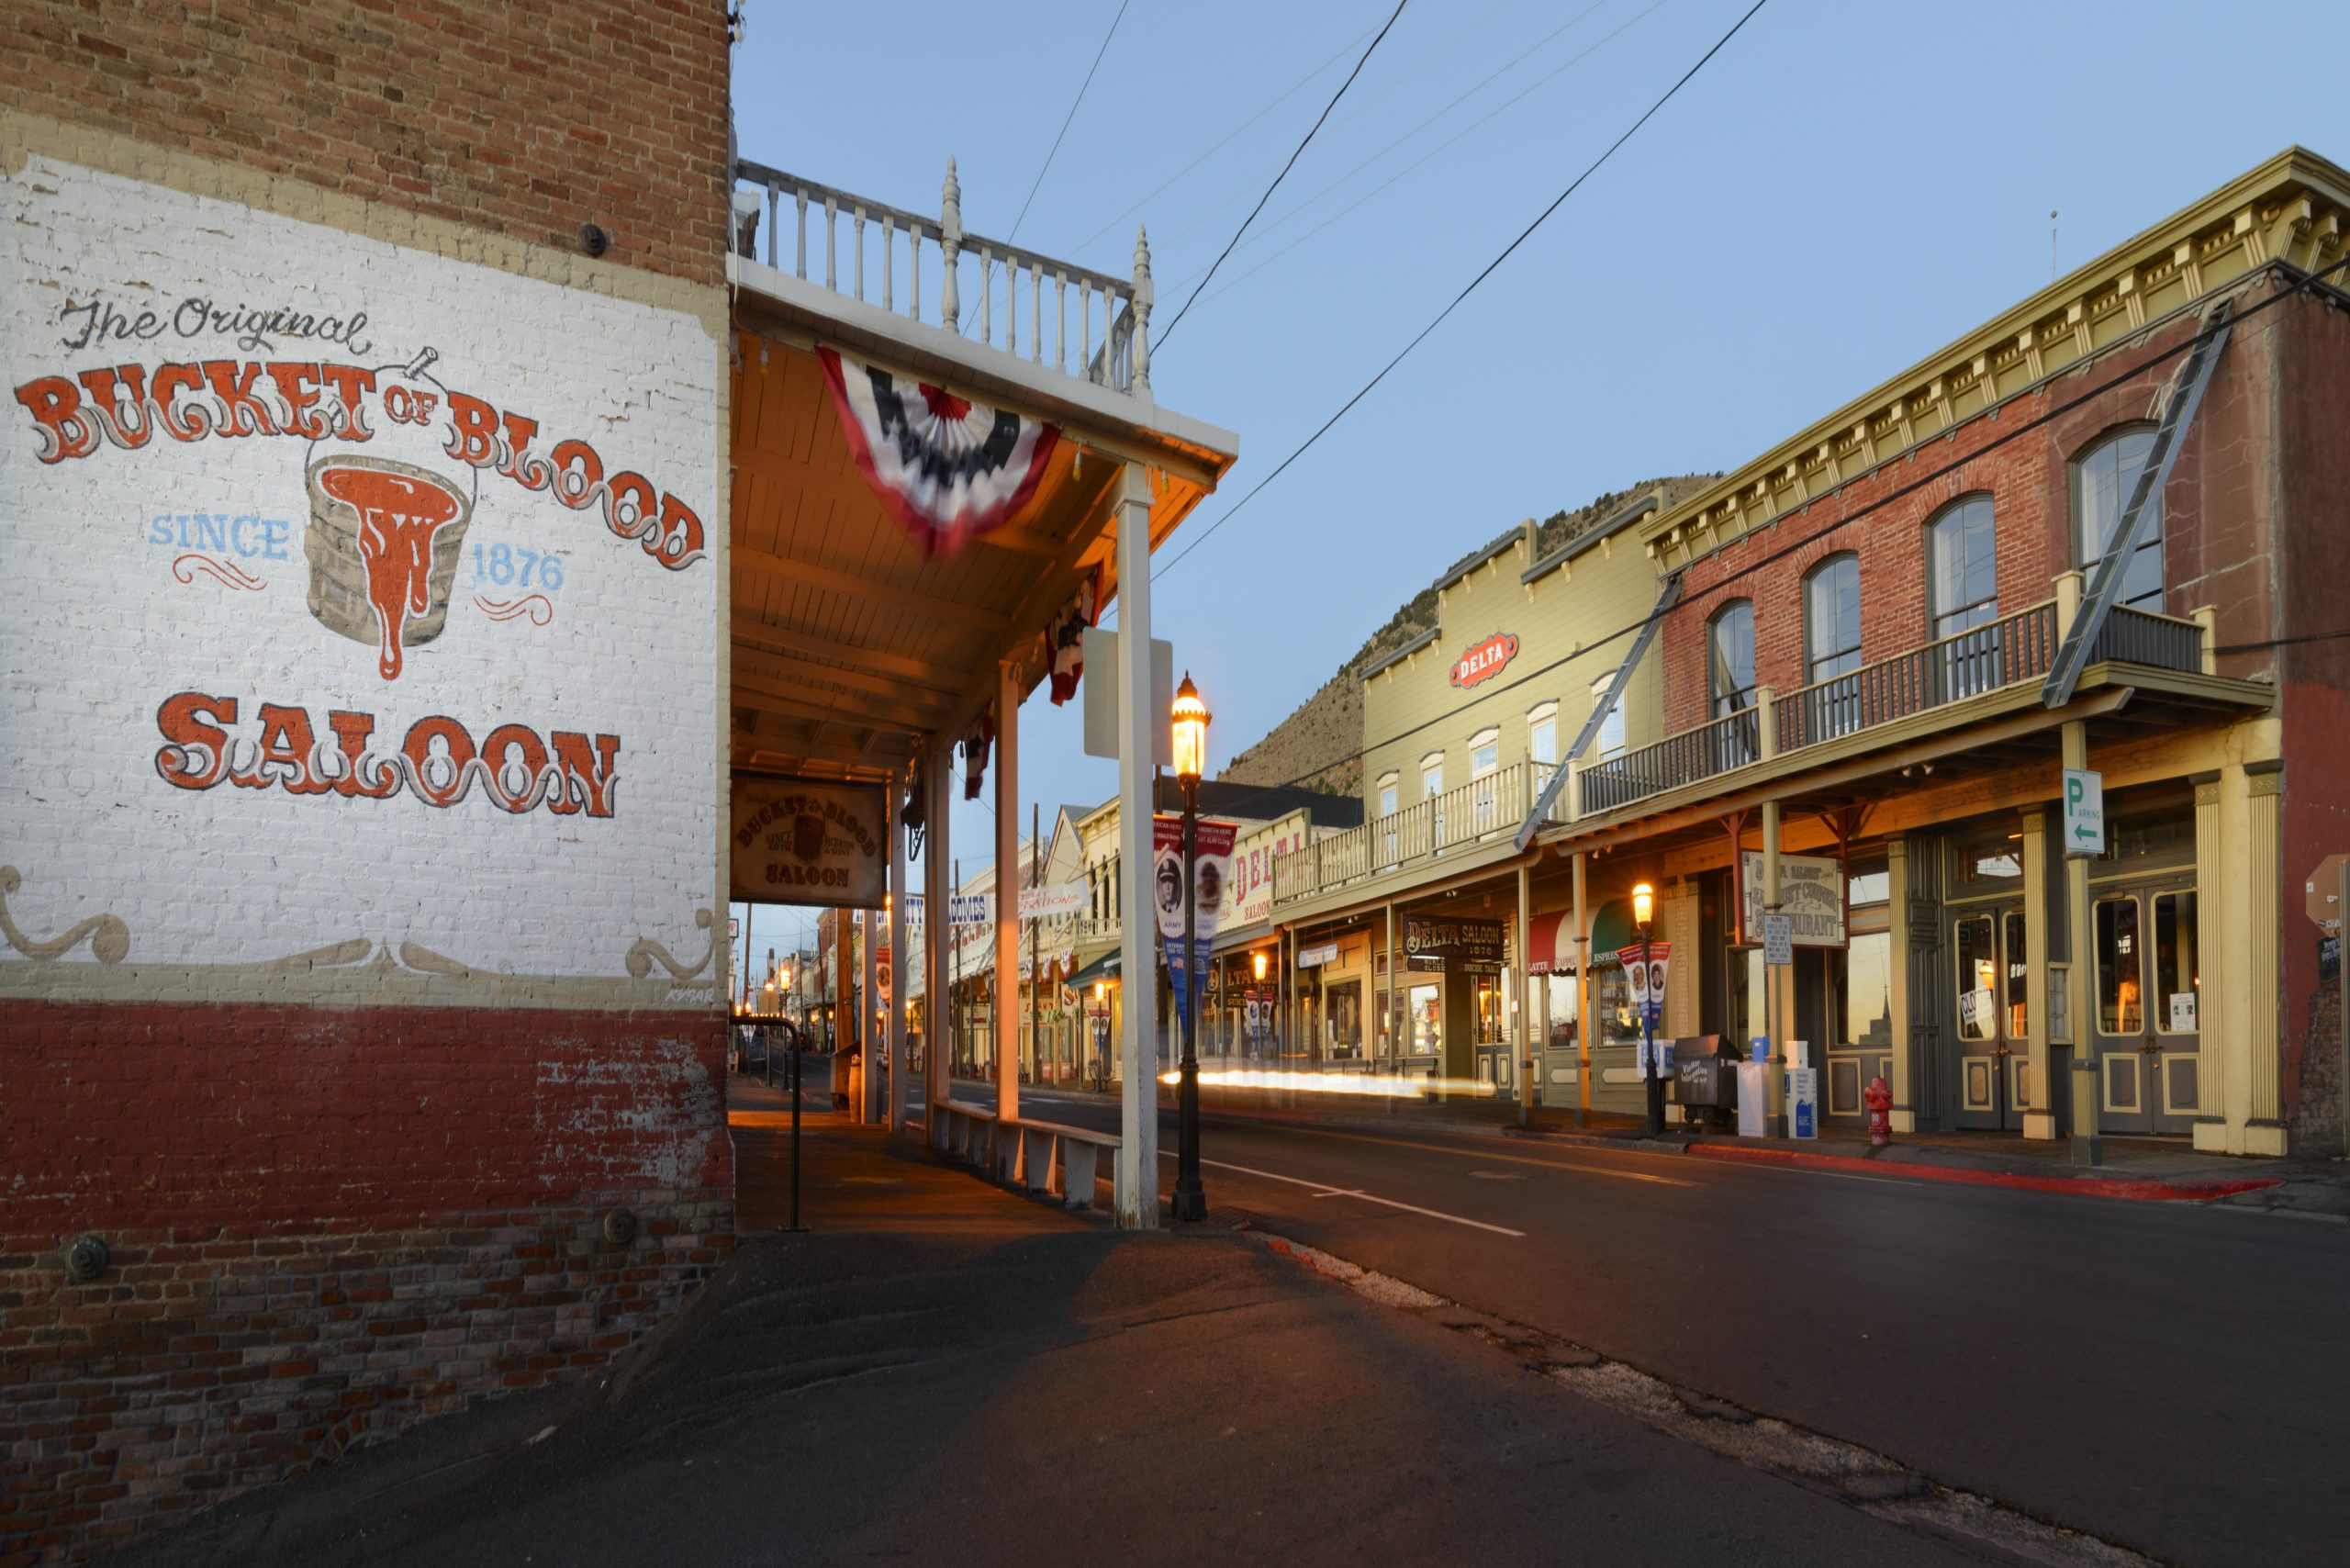 Virginia City's Main Street near the Bucket of Blood Saloon.